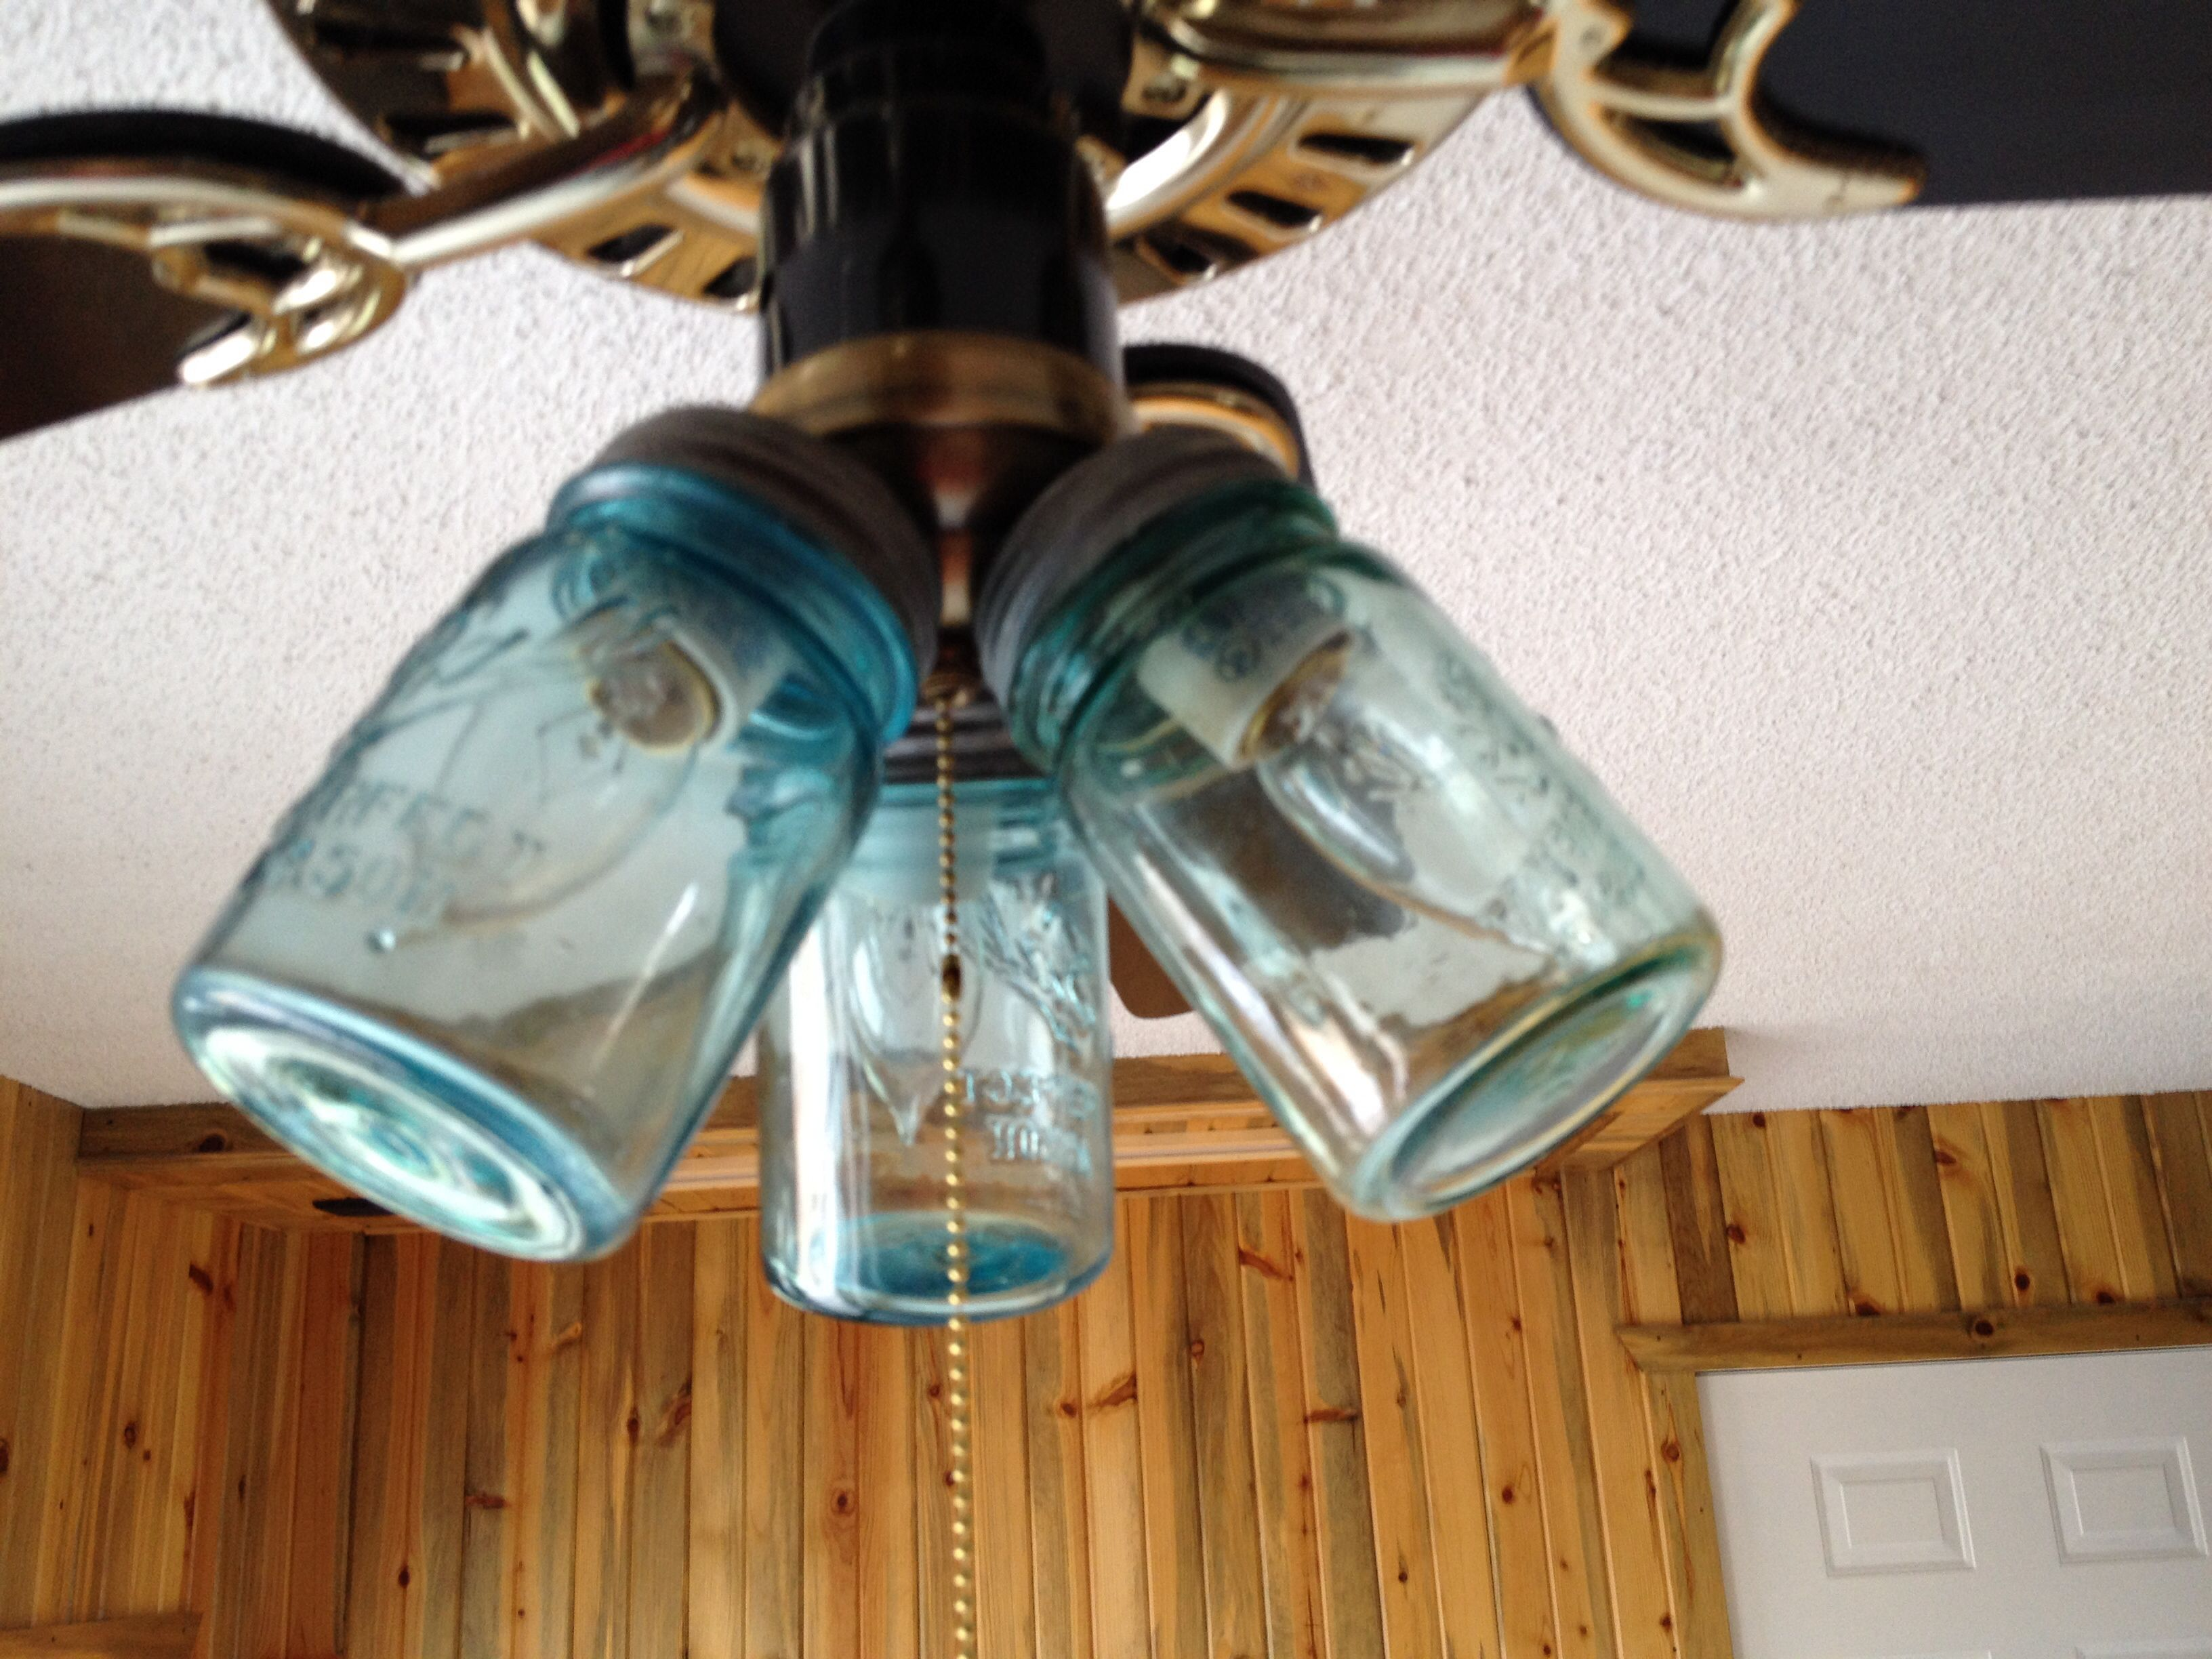 Mason jar ceiling fan light covers   Home Sweet Home   Pinterest     Mason jar ceiling fan light covers